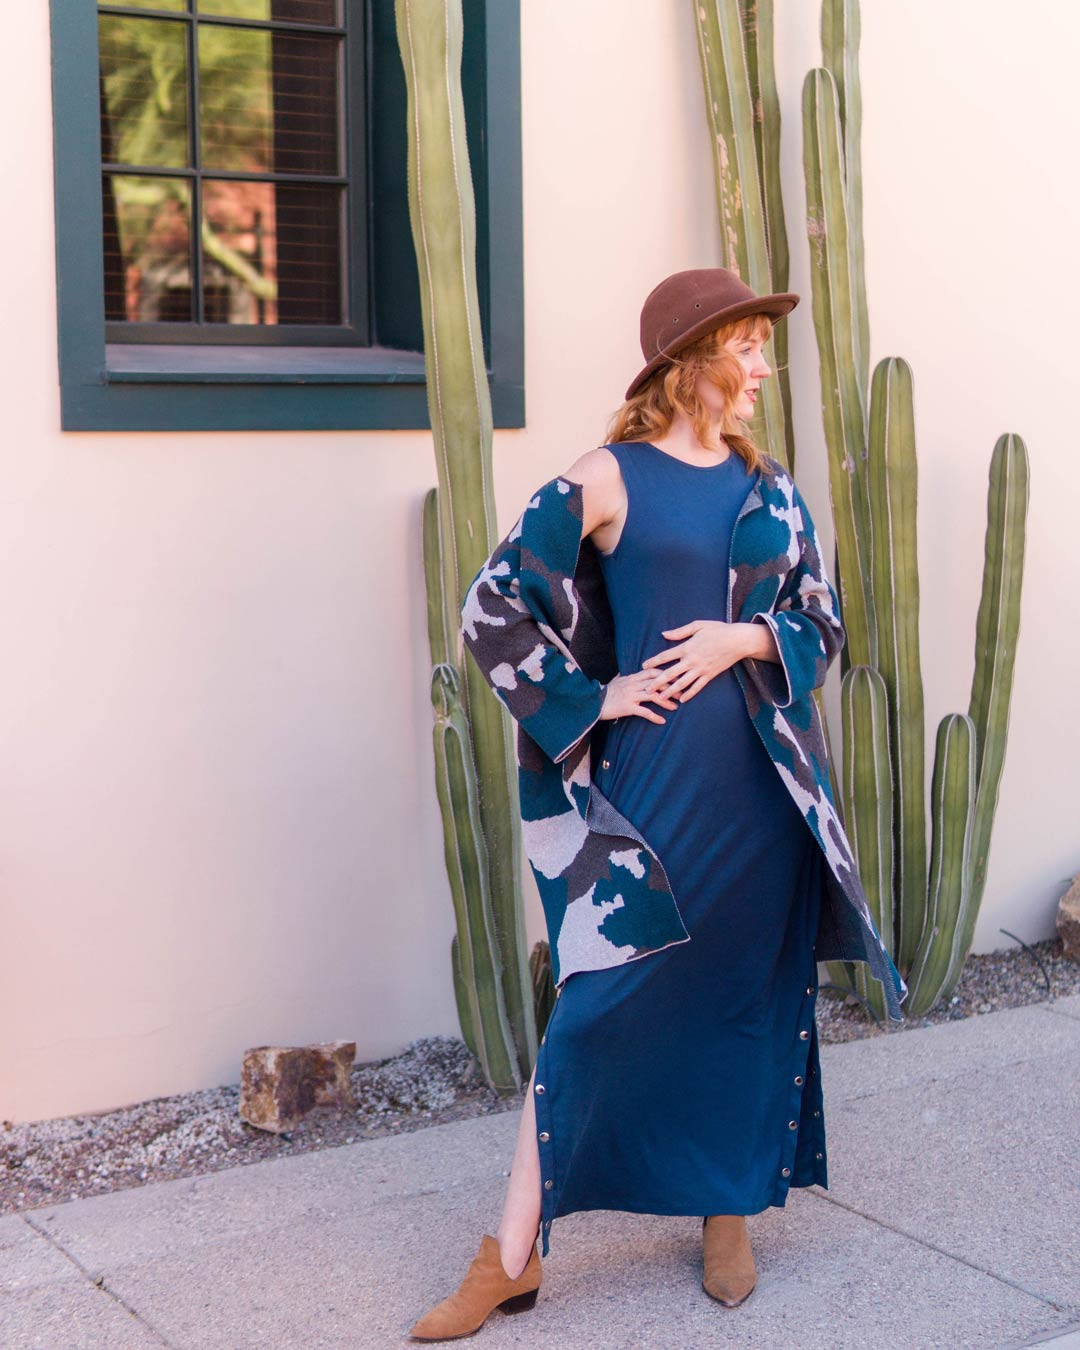 Misty Foster in Organic Cotton Clothing | Snap Maxi Dress | Knit Ink Blot Cardigan